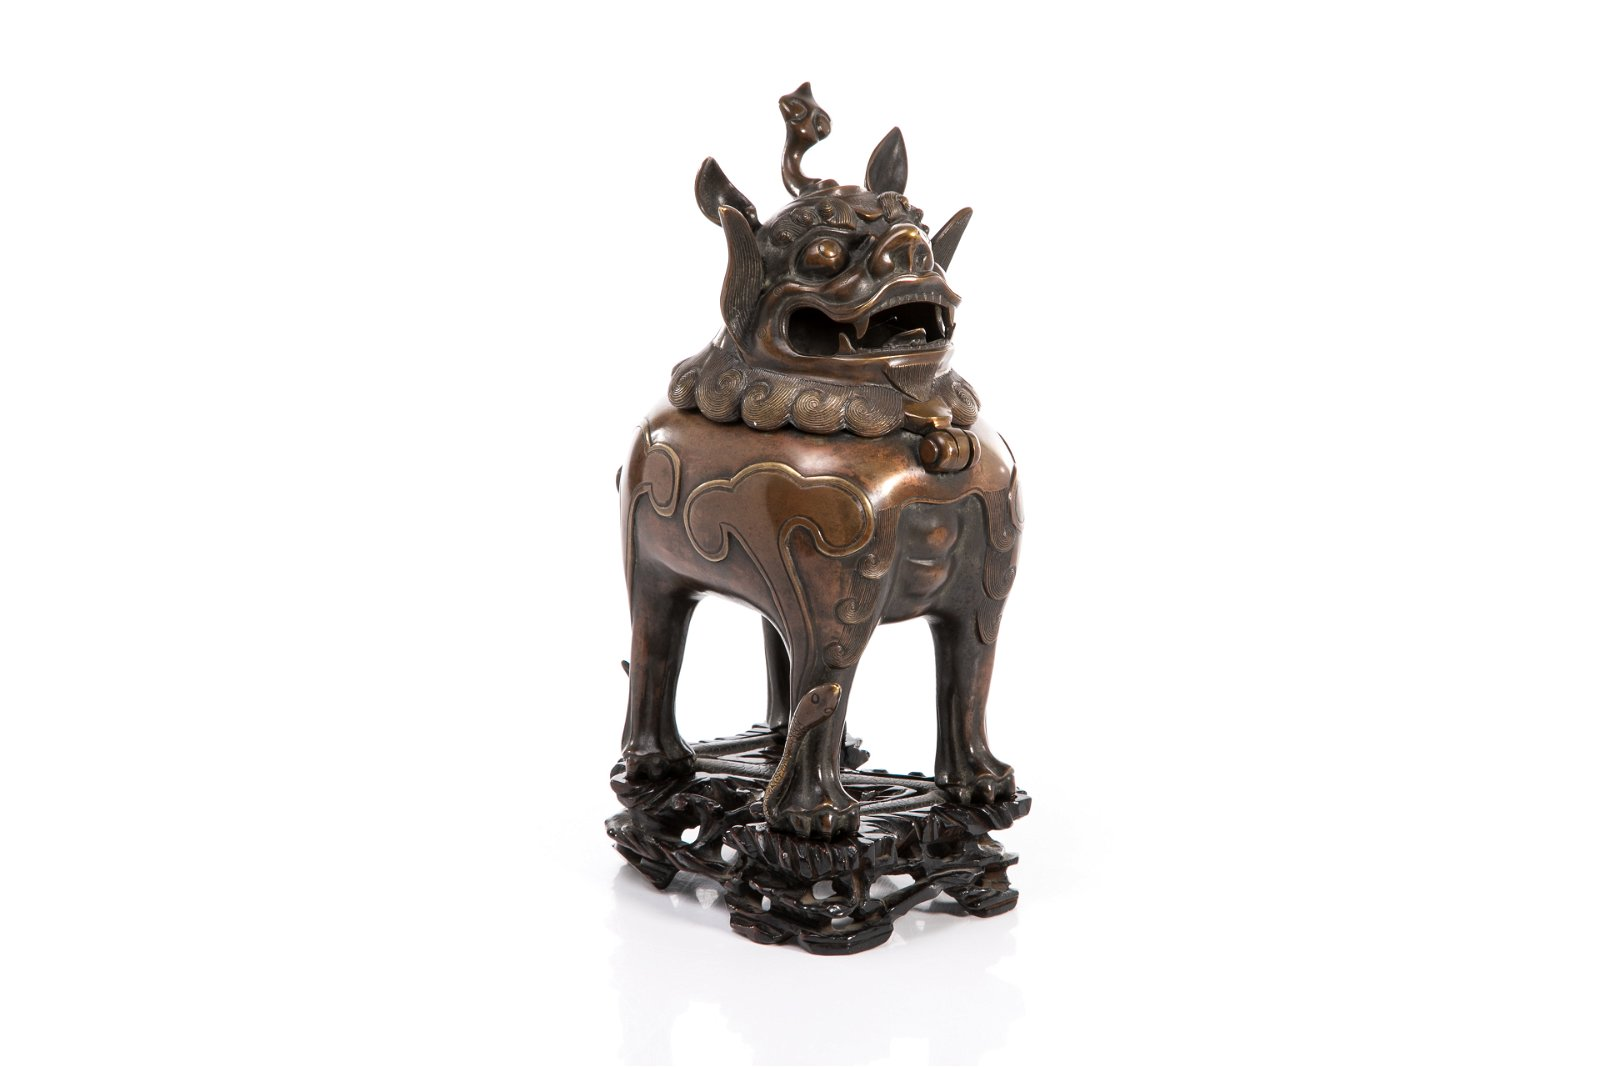 AUGUST 31ST SESSION I: ASIAN ART FROM A WEST COAST COLLECTION preview